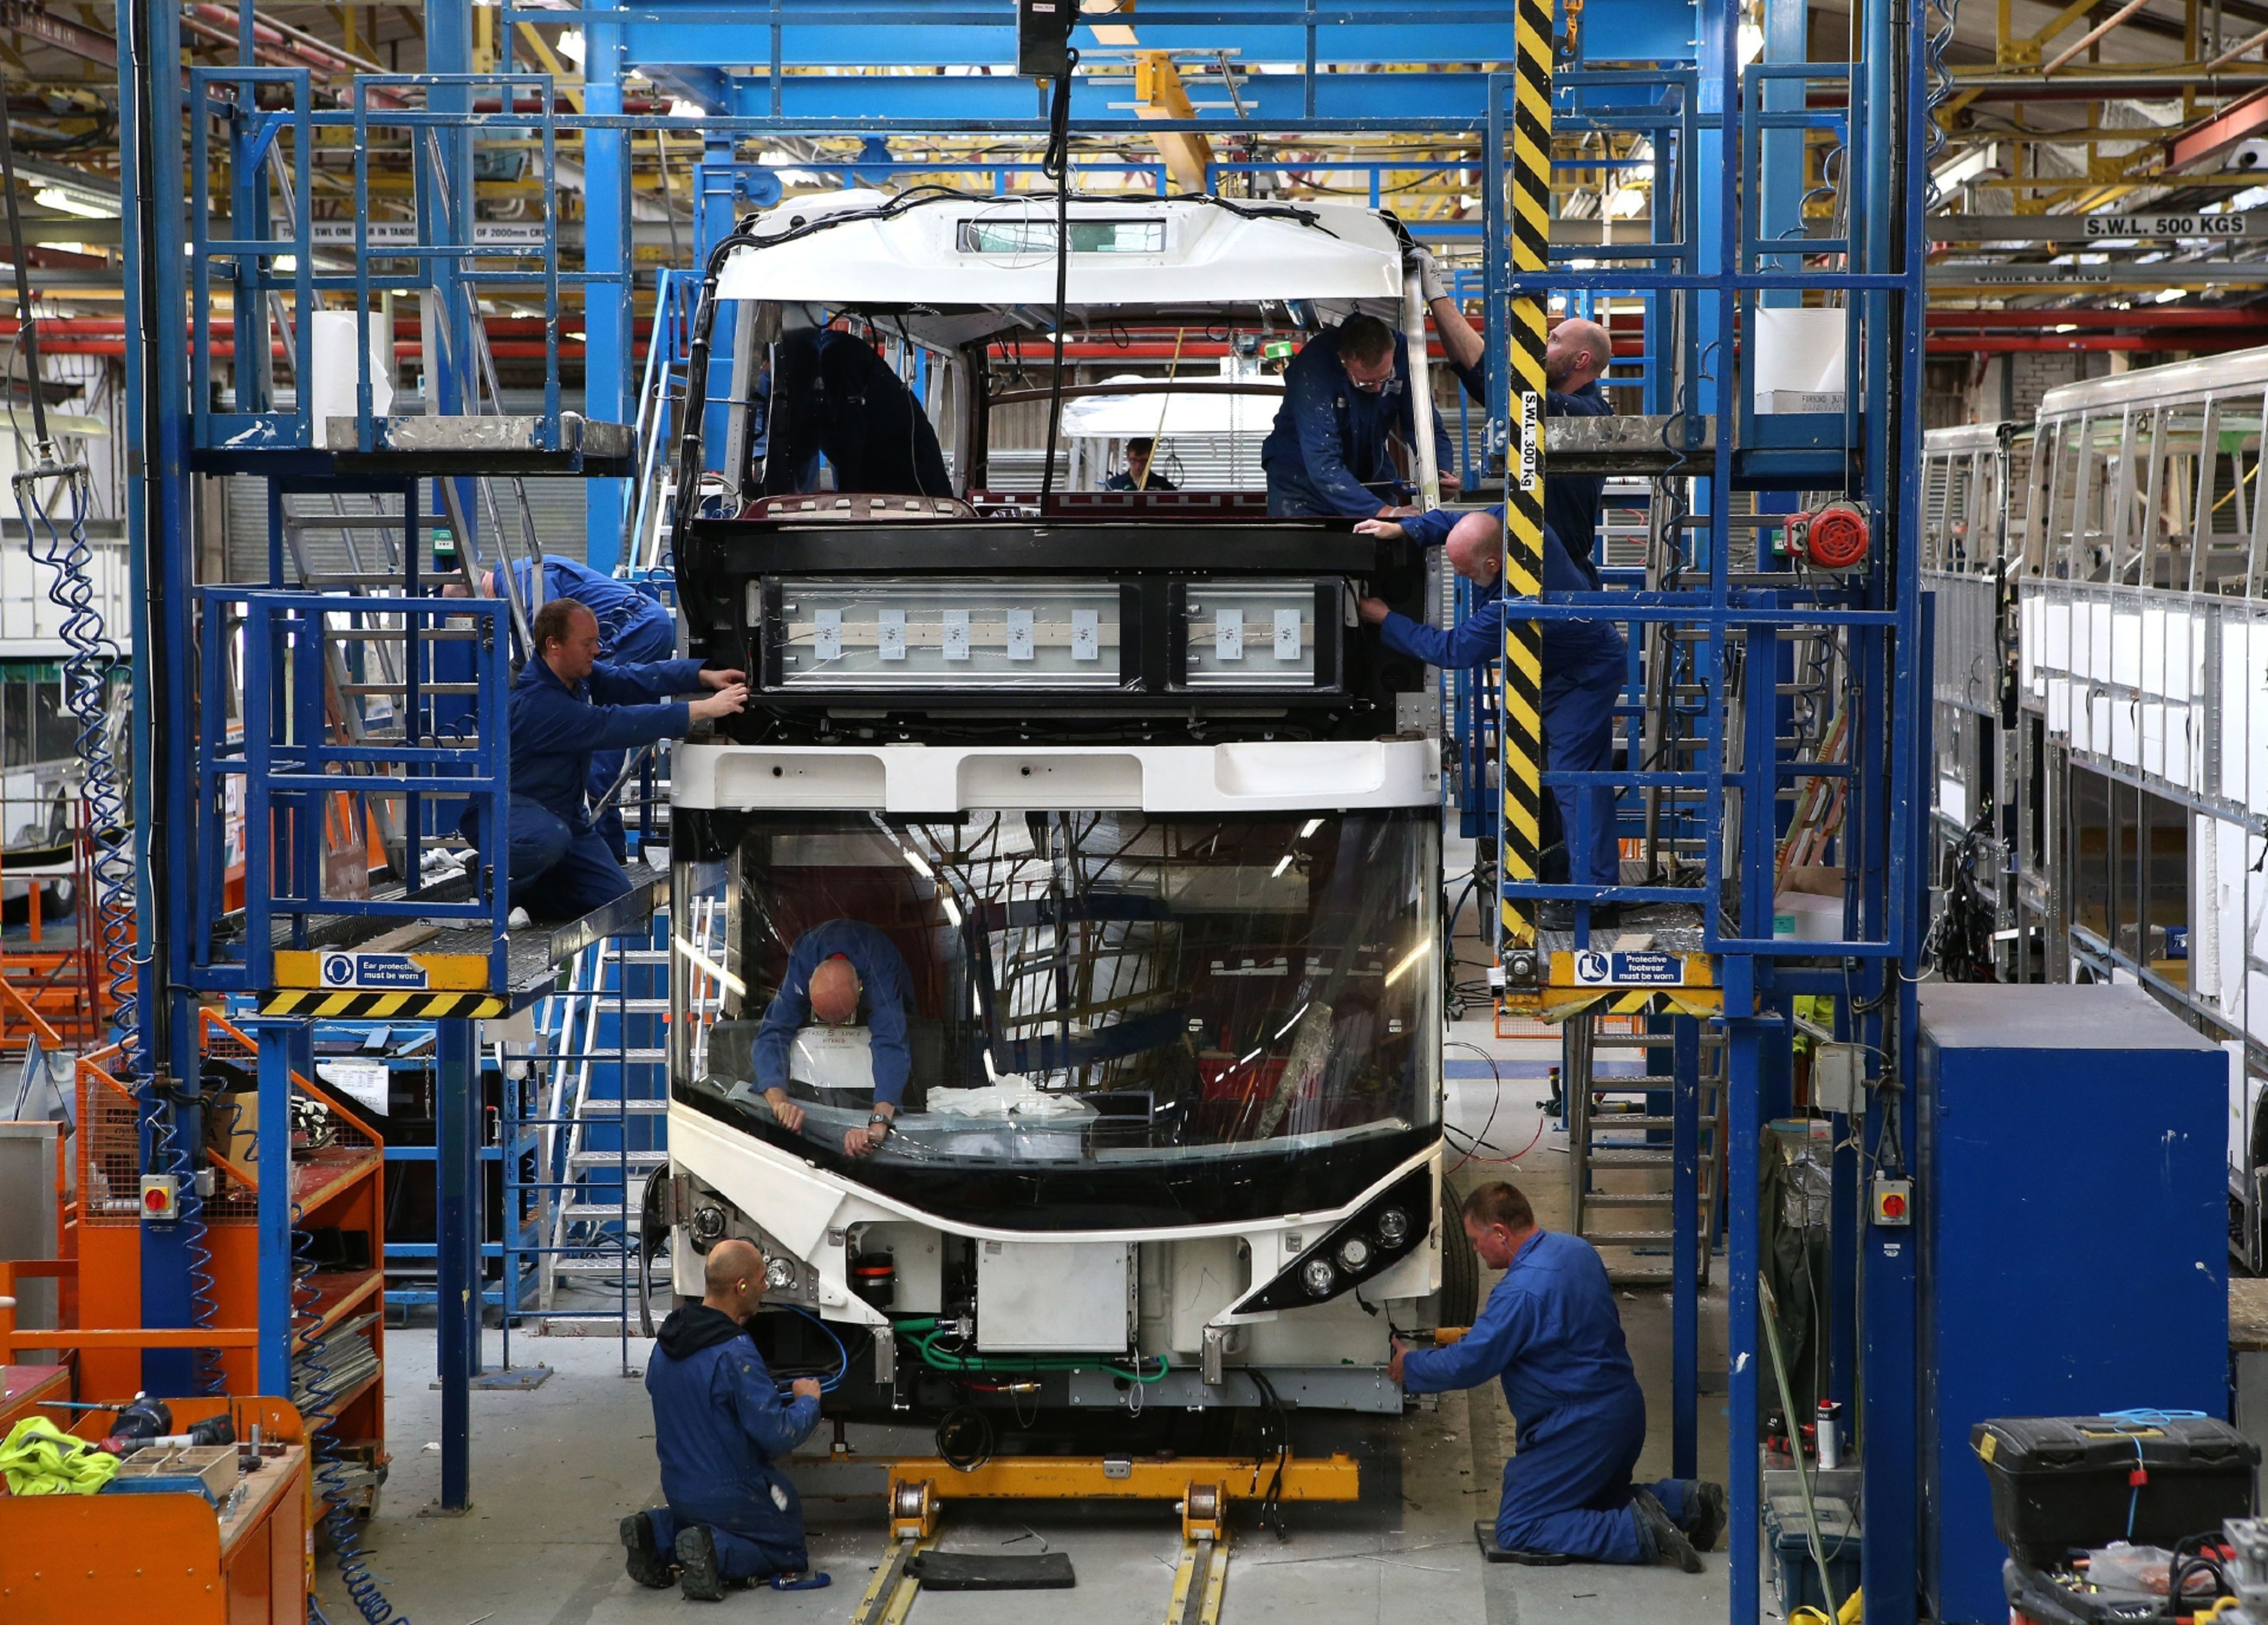 Falkirk bus manufacturer Alexander Dennis is planning to double turnover by 2020.